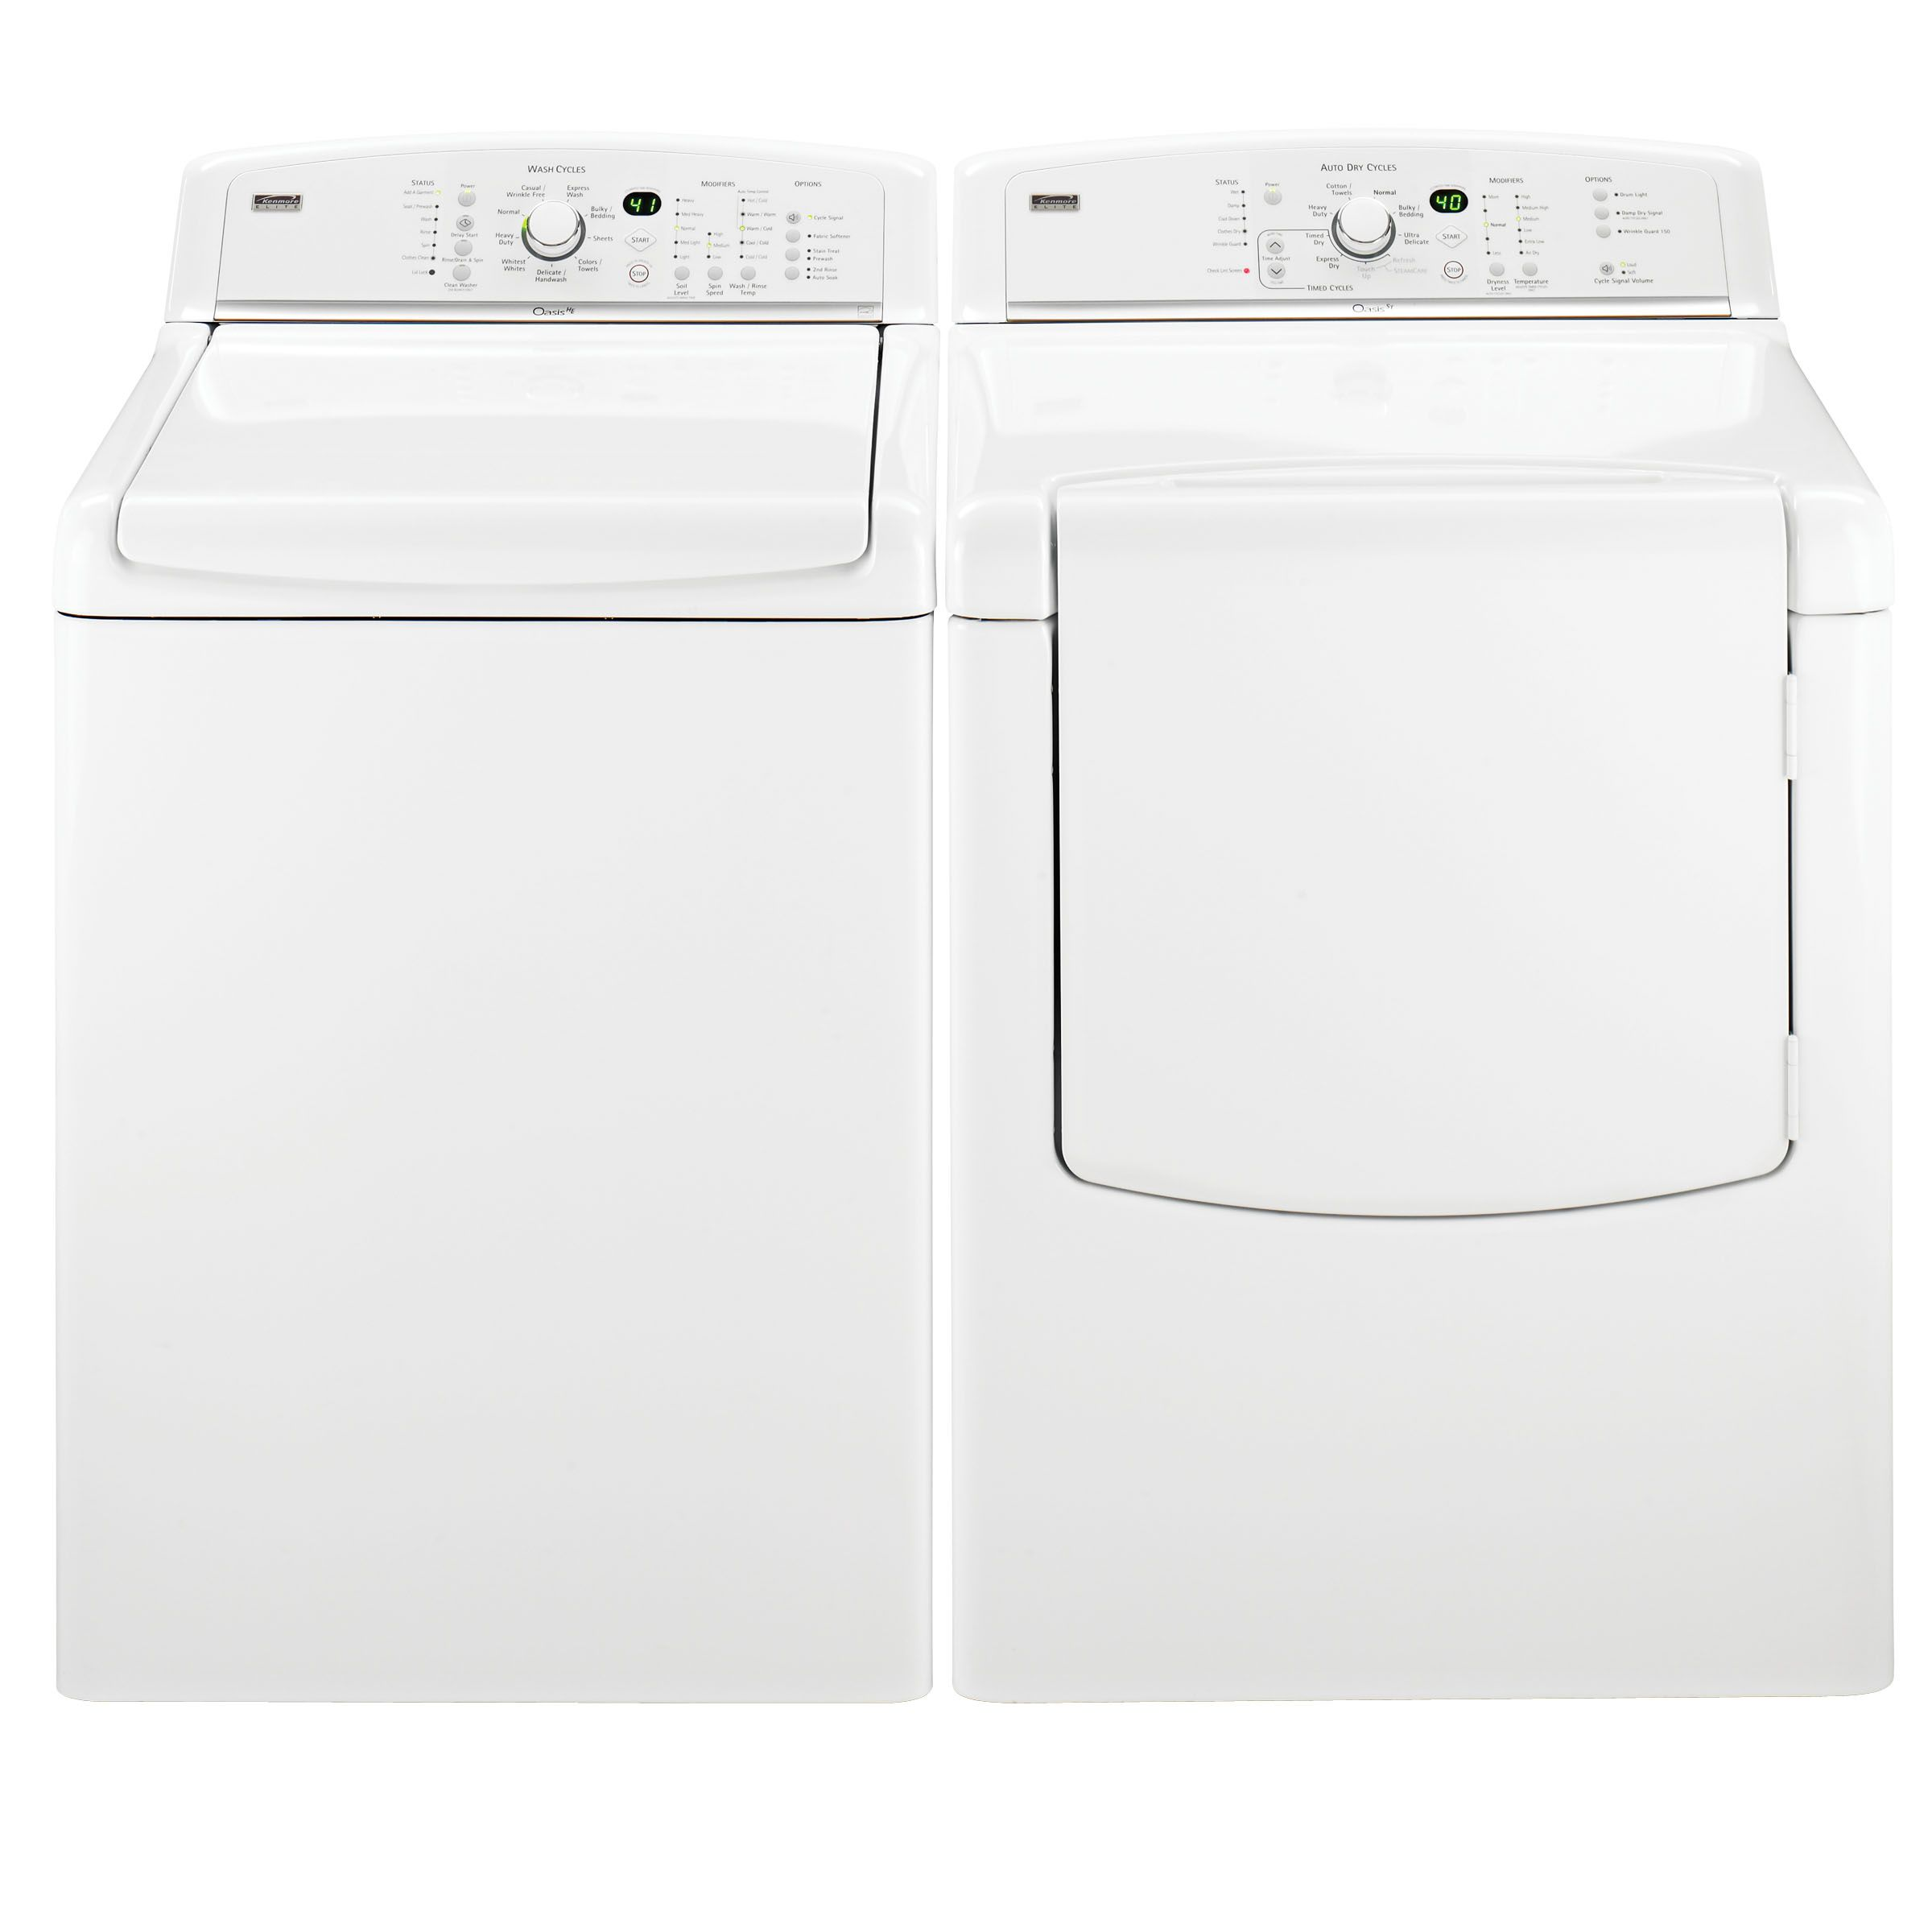 Kenmore Elite Oasis™ HE 4.7 cu. ft. Top-Load Washing Machine (2806)